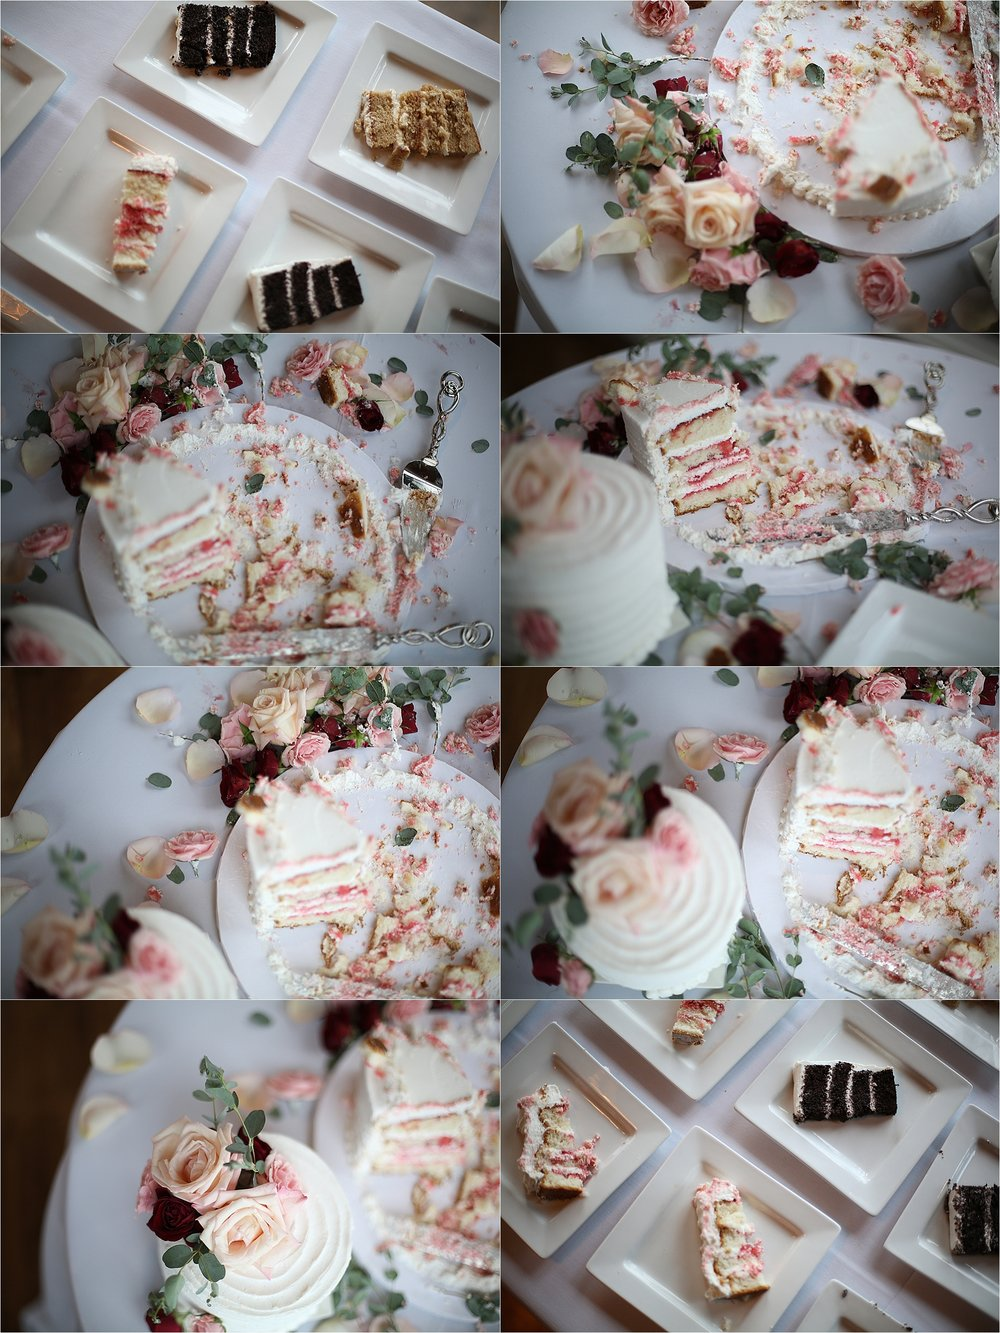 Messy Wedding Cake Montage The Gallery in Downtown Johnson City, Tennessee Wedding Photography